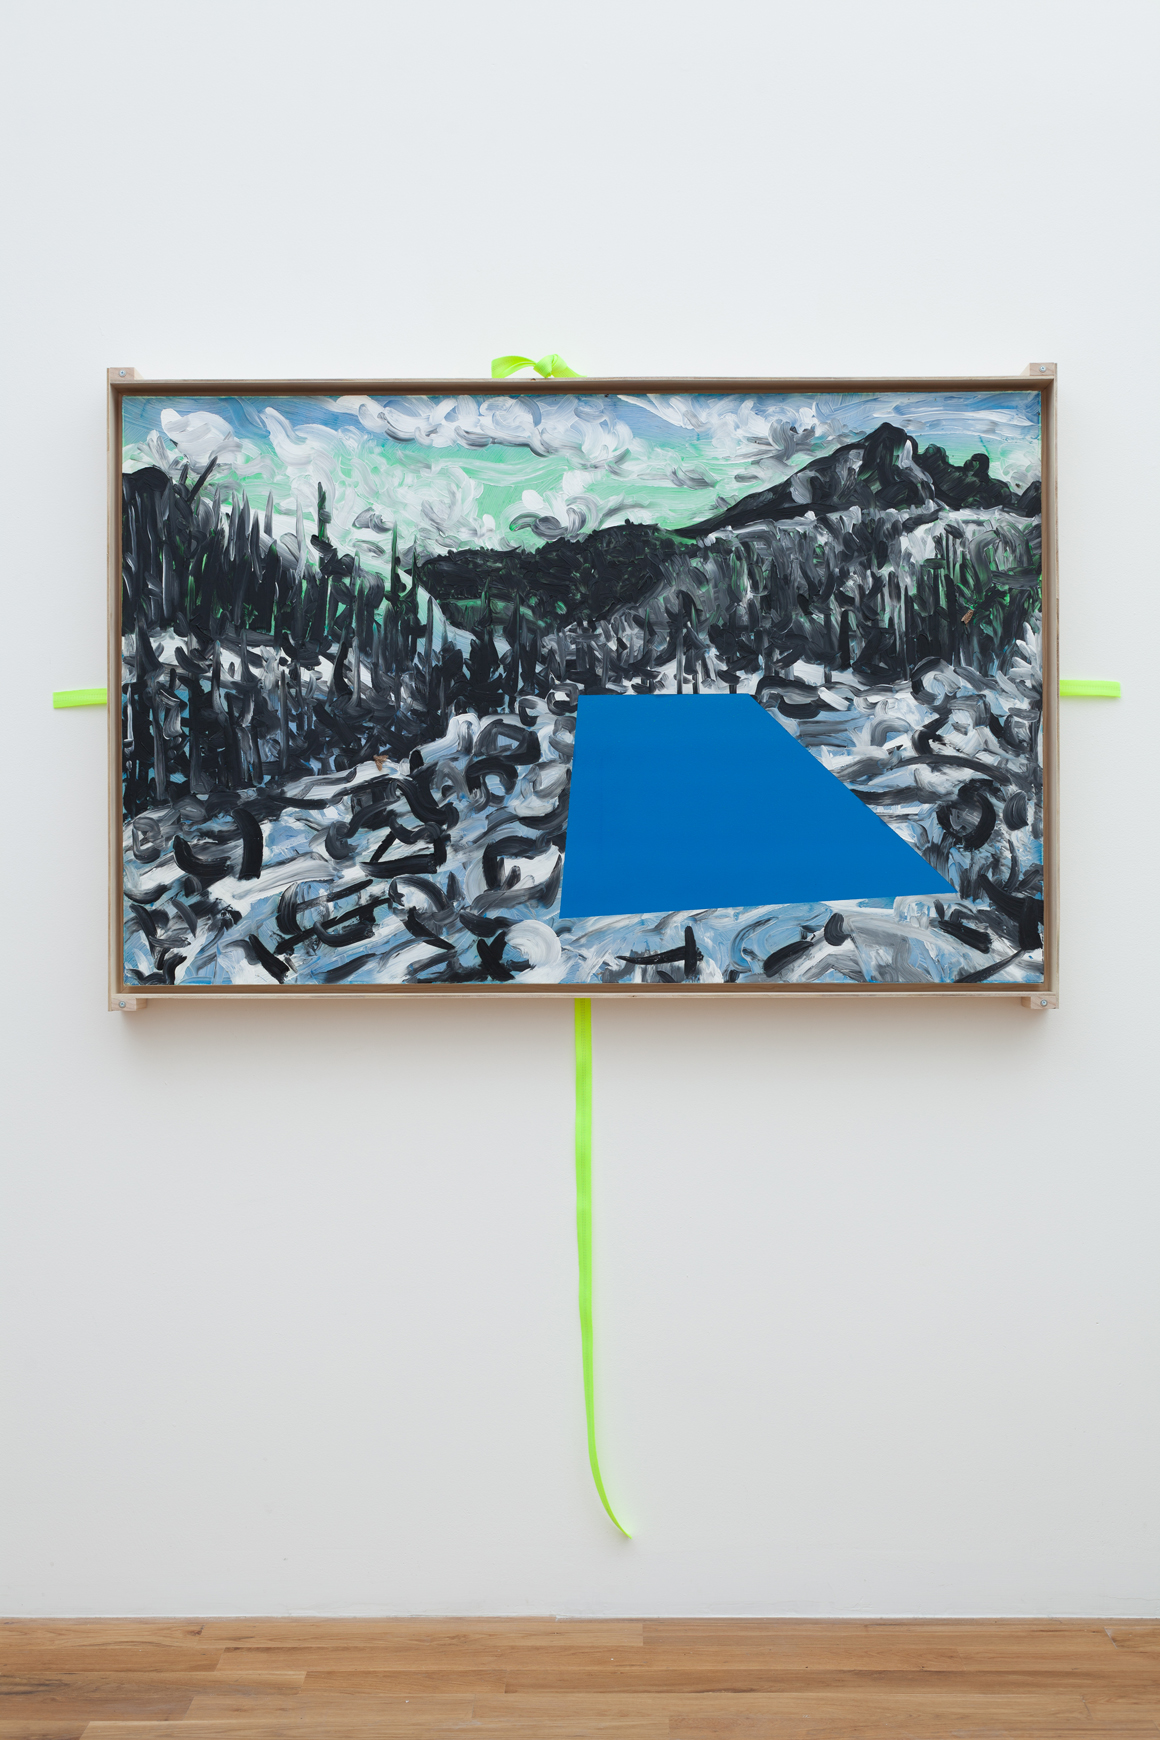 "<p><em>39°44'05.9""N 106°08'01.2""W</em><span class='media'>Oil on DayGlo with transportation crate and straps</span>36 x 56 in (91.4 x 142.2 cm)<br>2015<br><a class='inquire' href='mailto:info@gildargallery.com?subject=Artwork Inquiry JCOC0009&body=I am interested in finding out more about 39°44'05.9""N 106°08'01.2""W by Joey Cocciardi'>Inquire</a></p>"